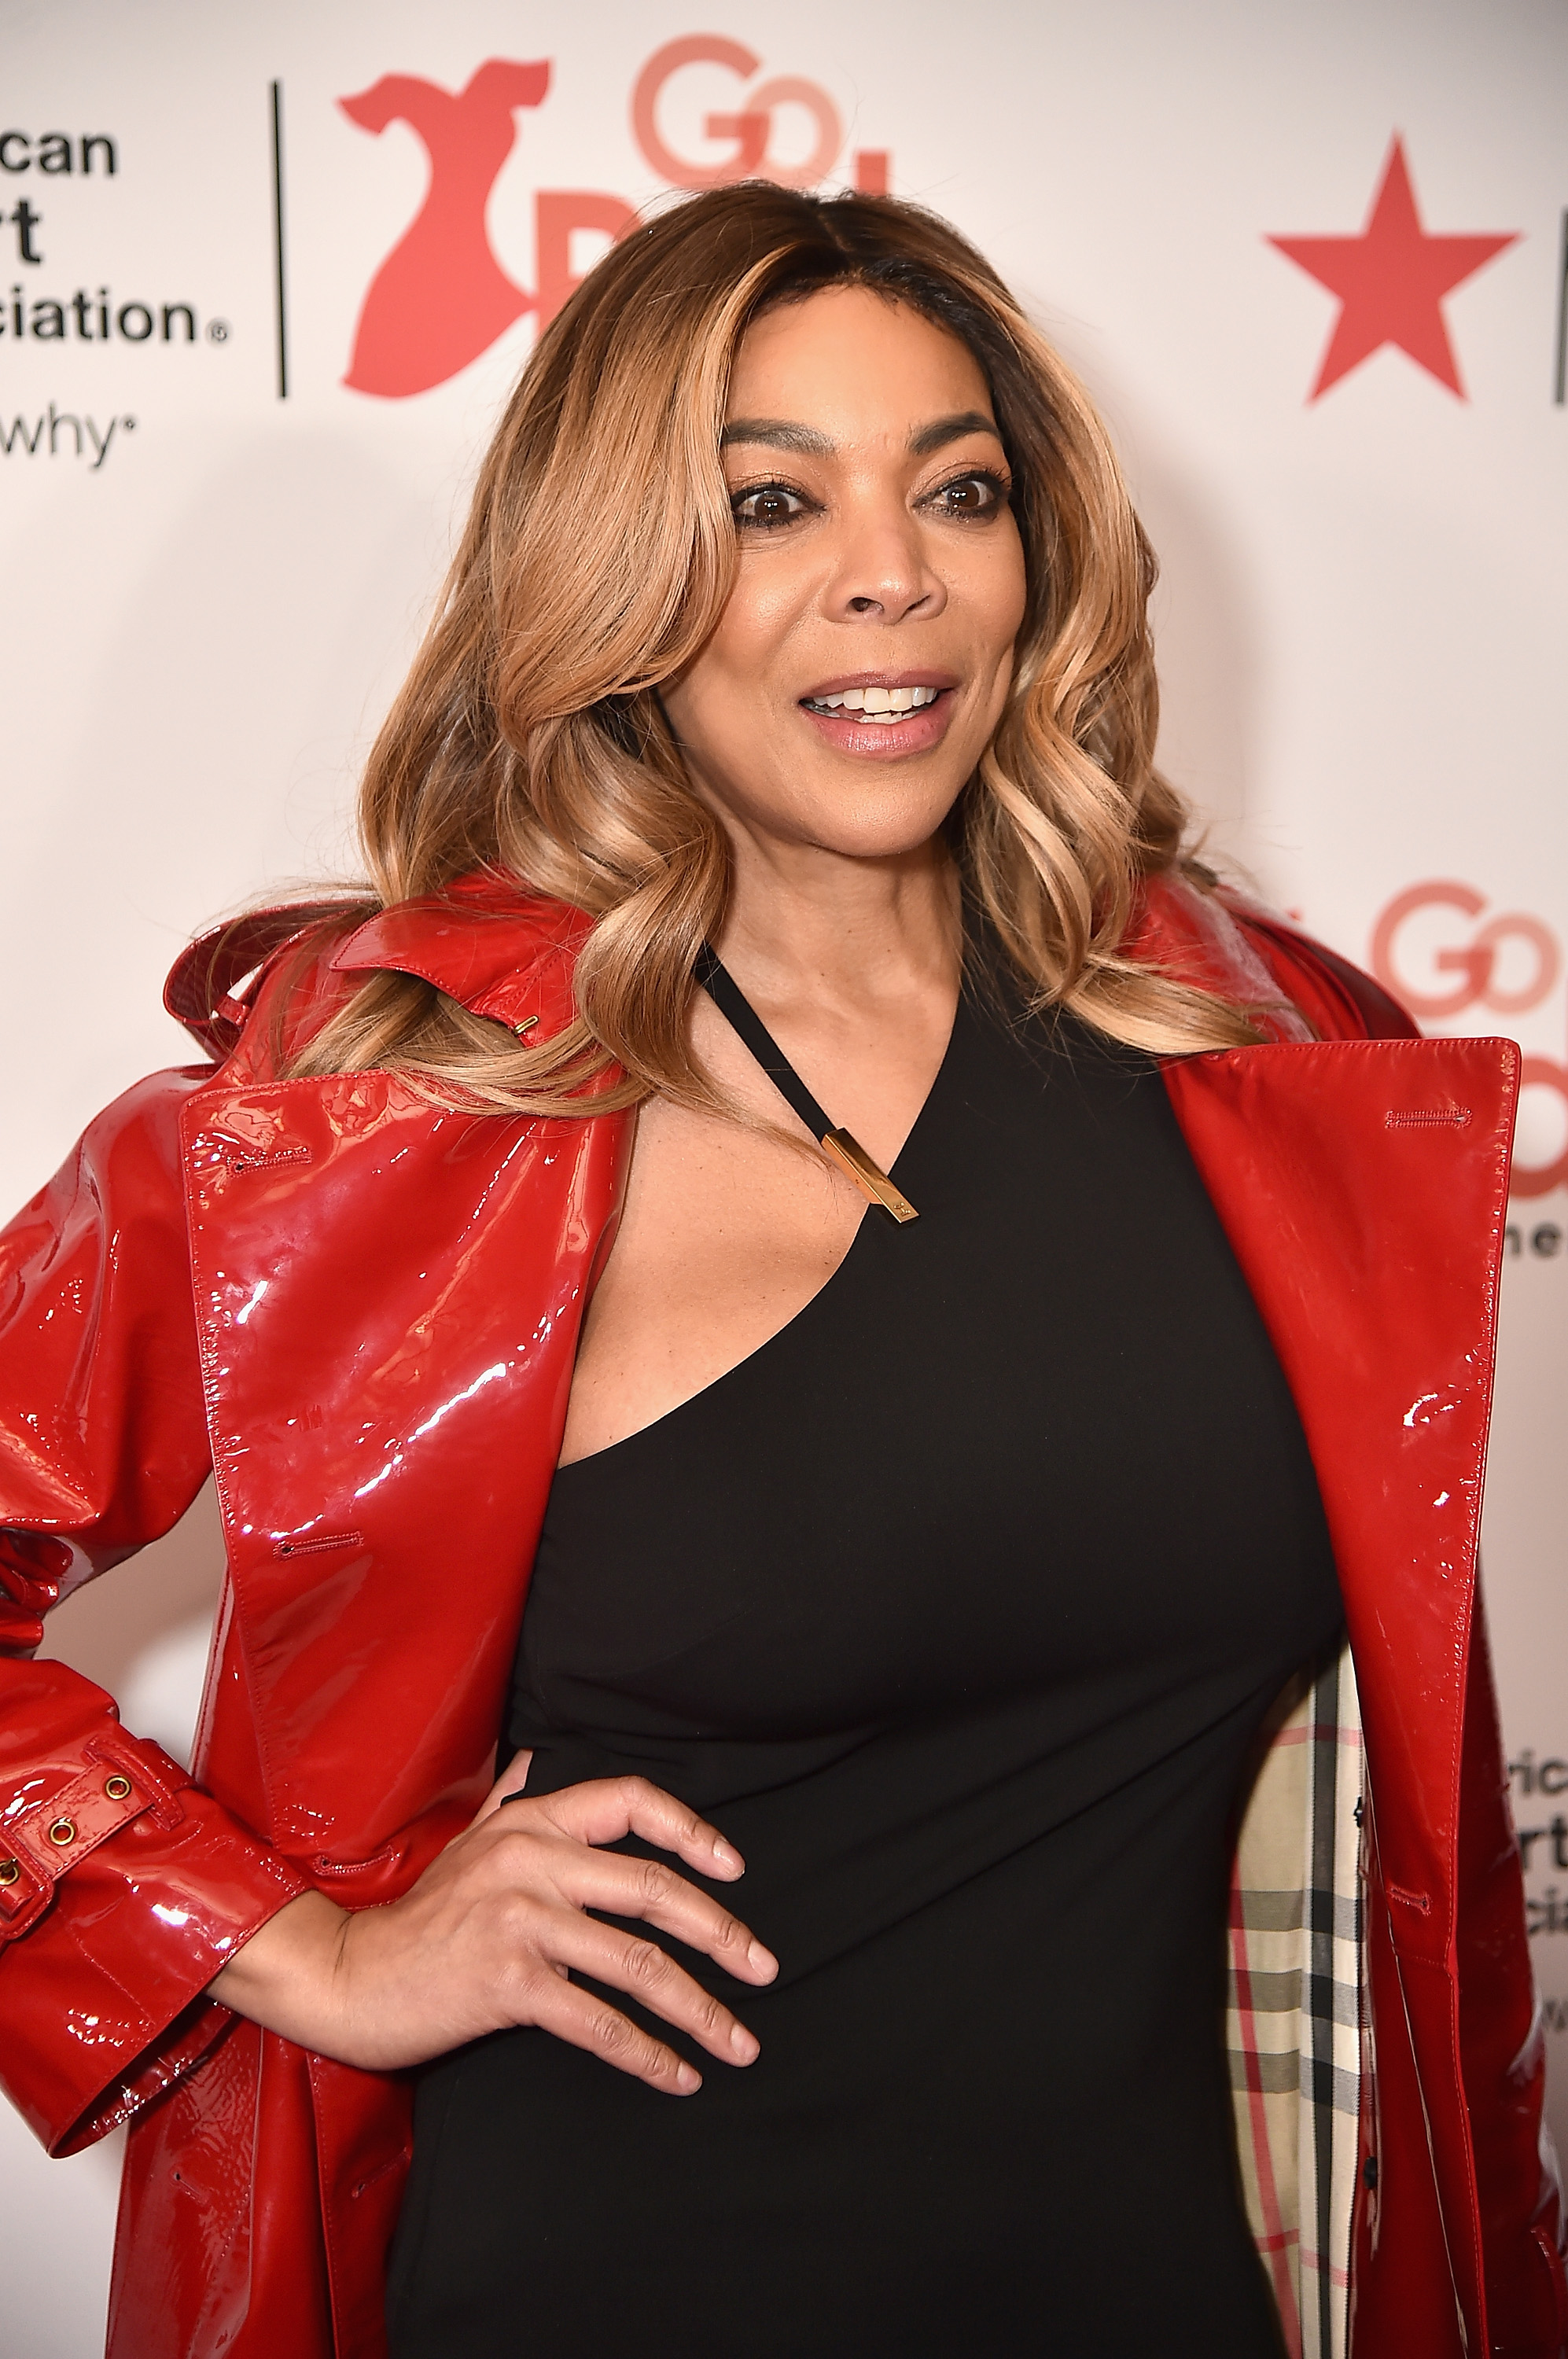 Wendy Williams attends the 2018 American Heart Association's Go Red For Women Red Dress Collection in New York City.